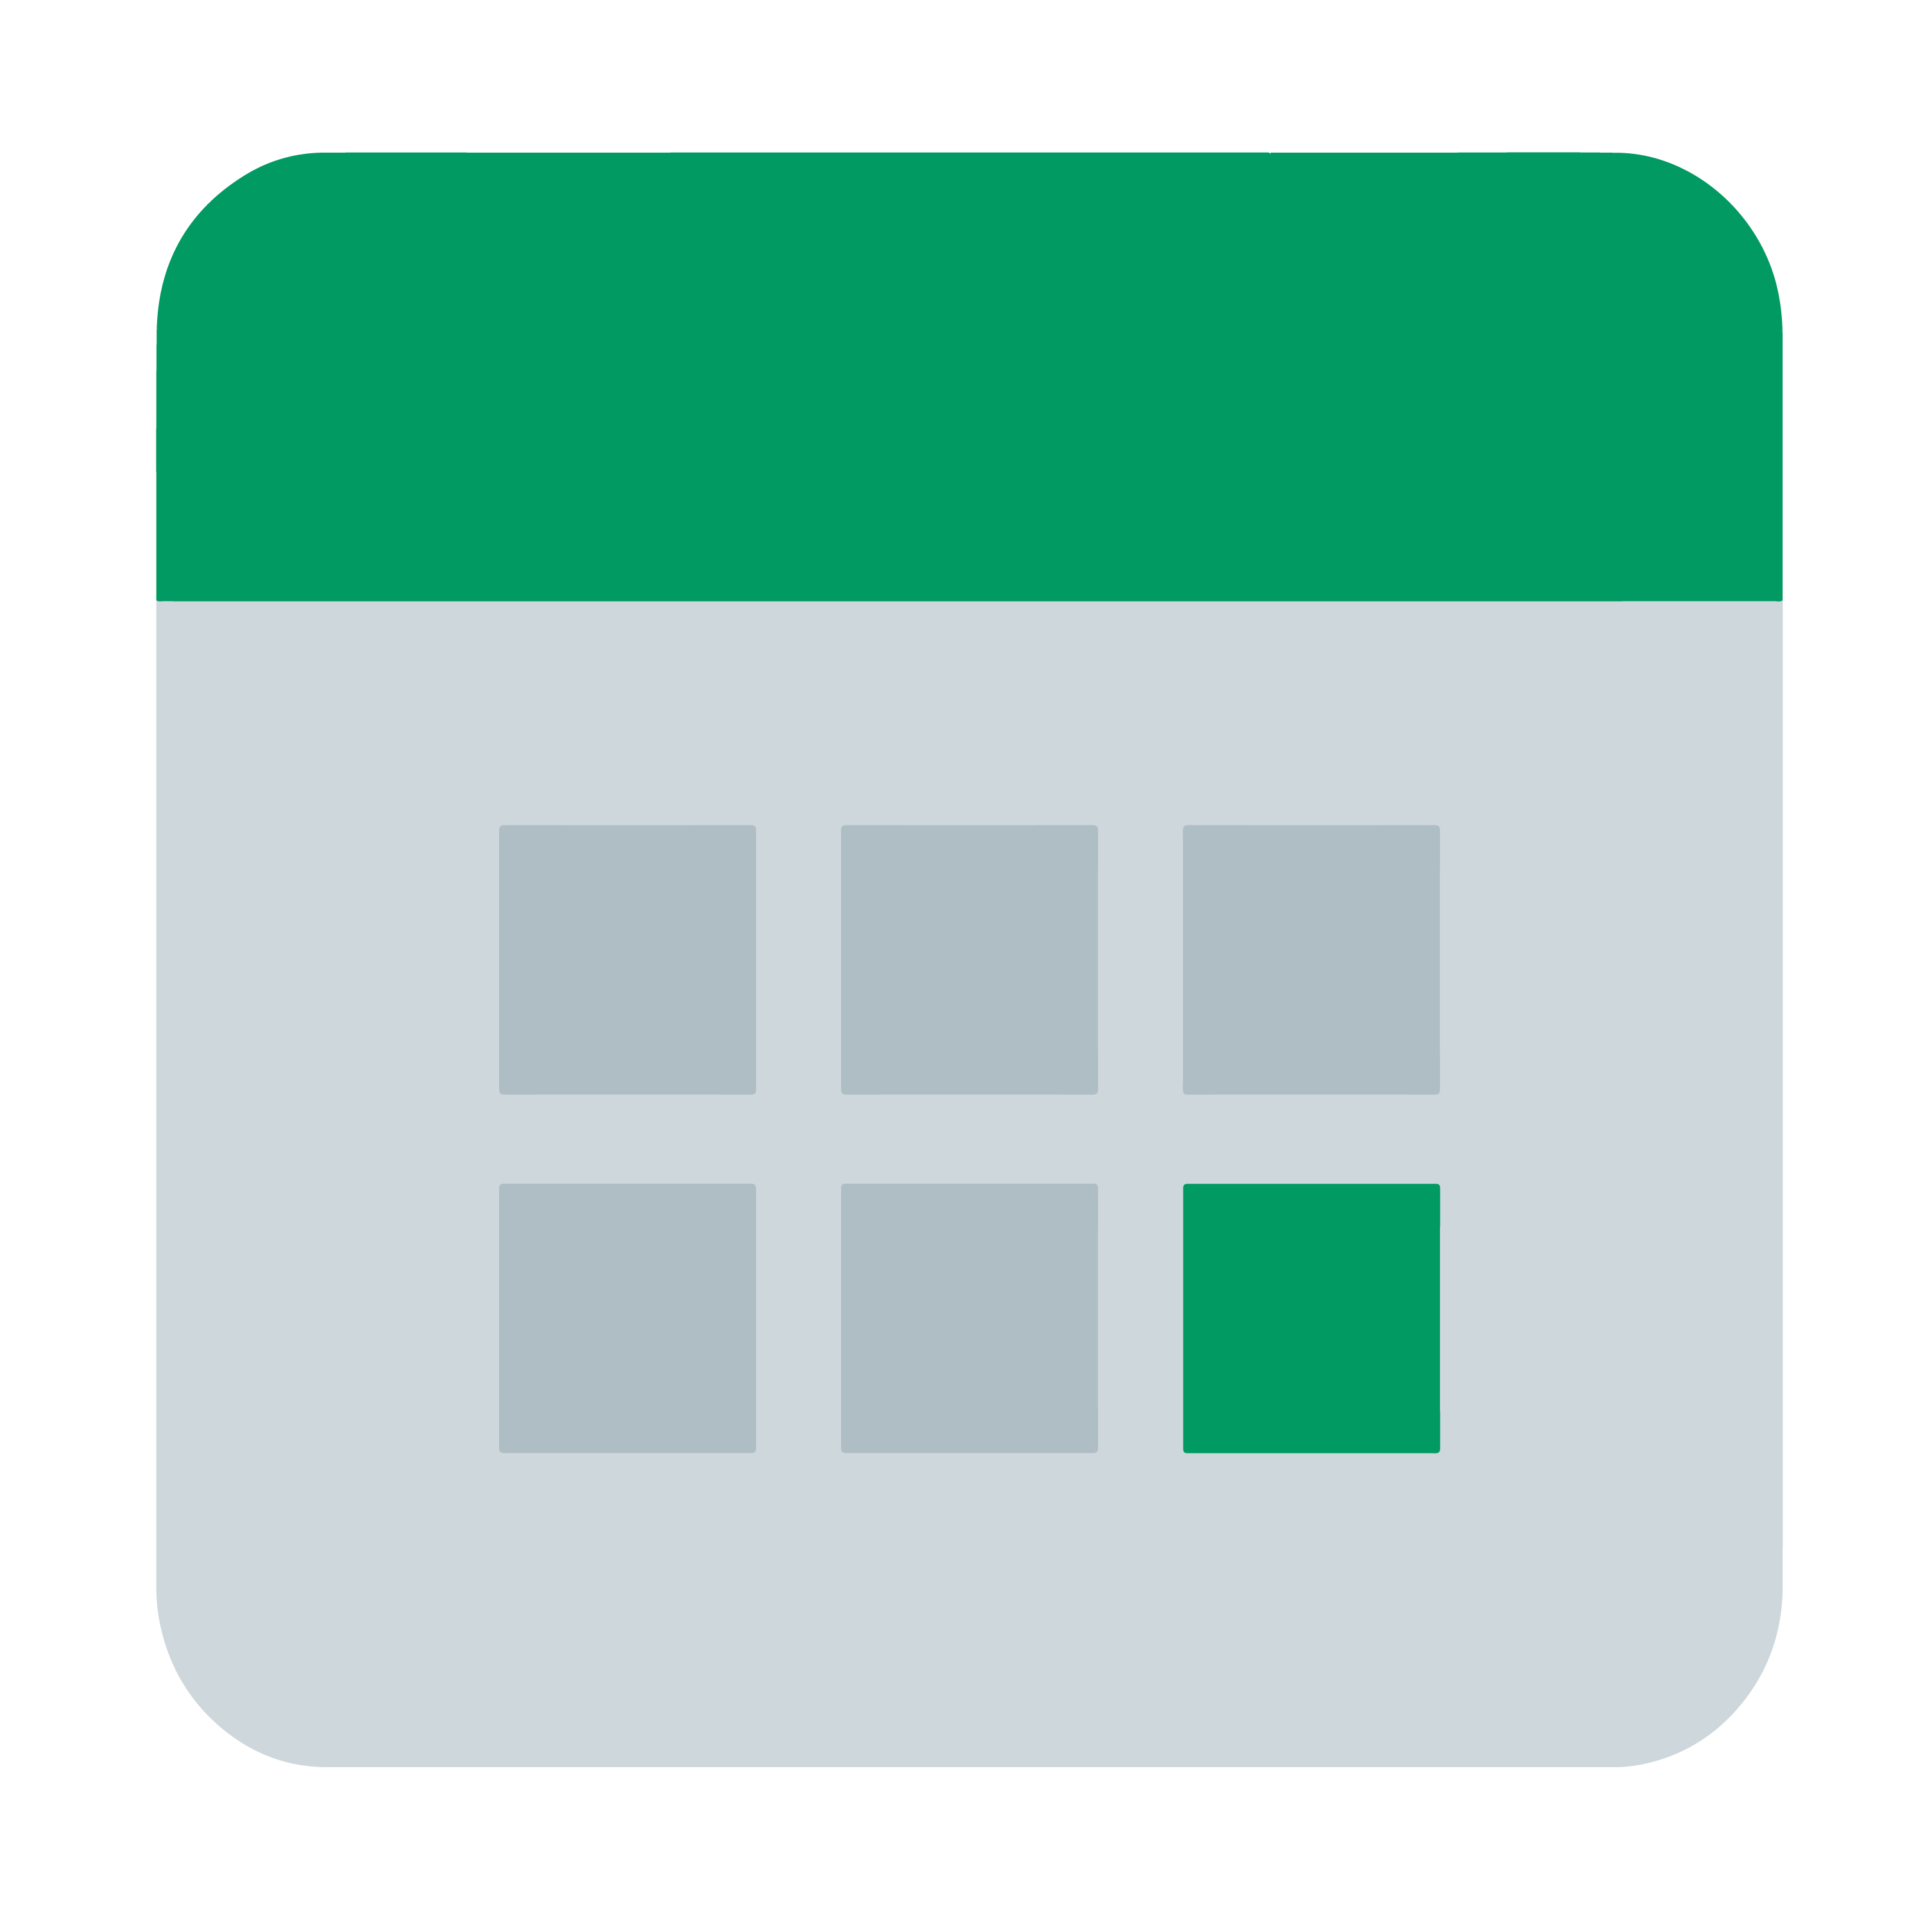 fileicons8 flat planner green calendarpng